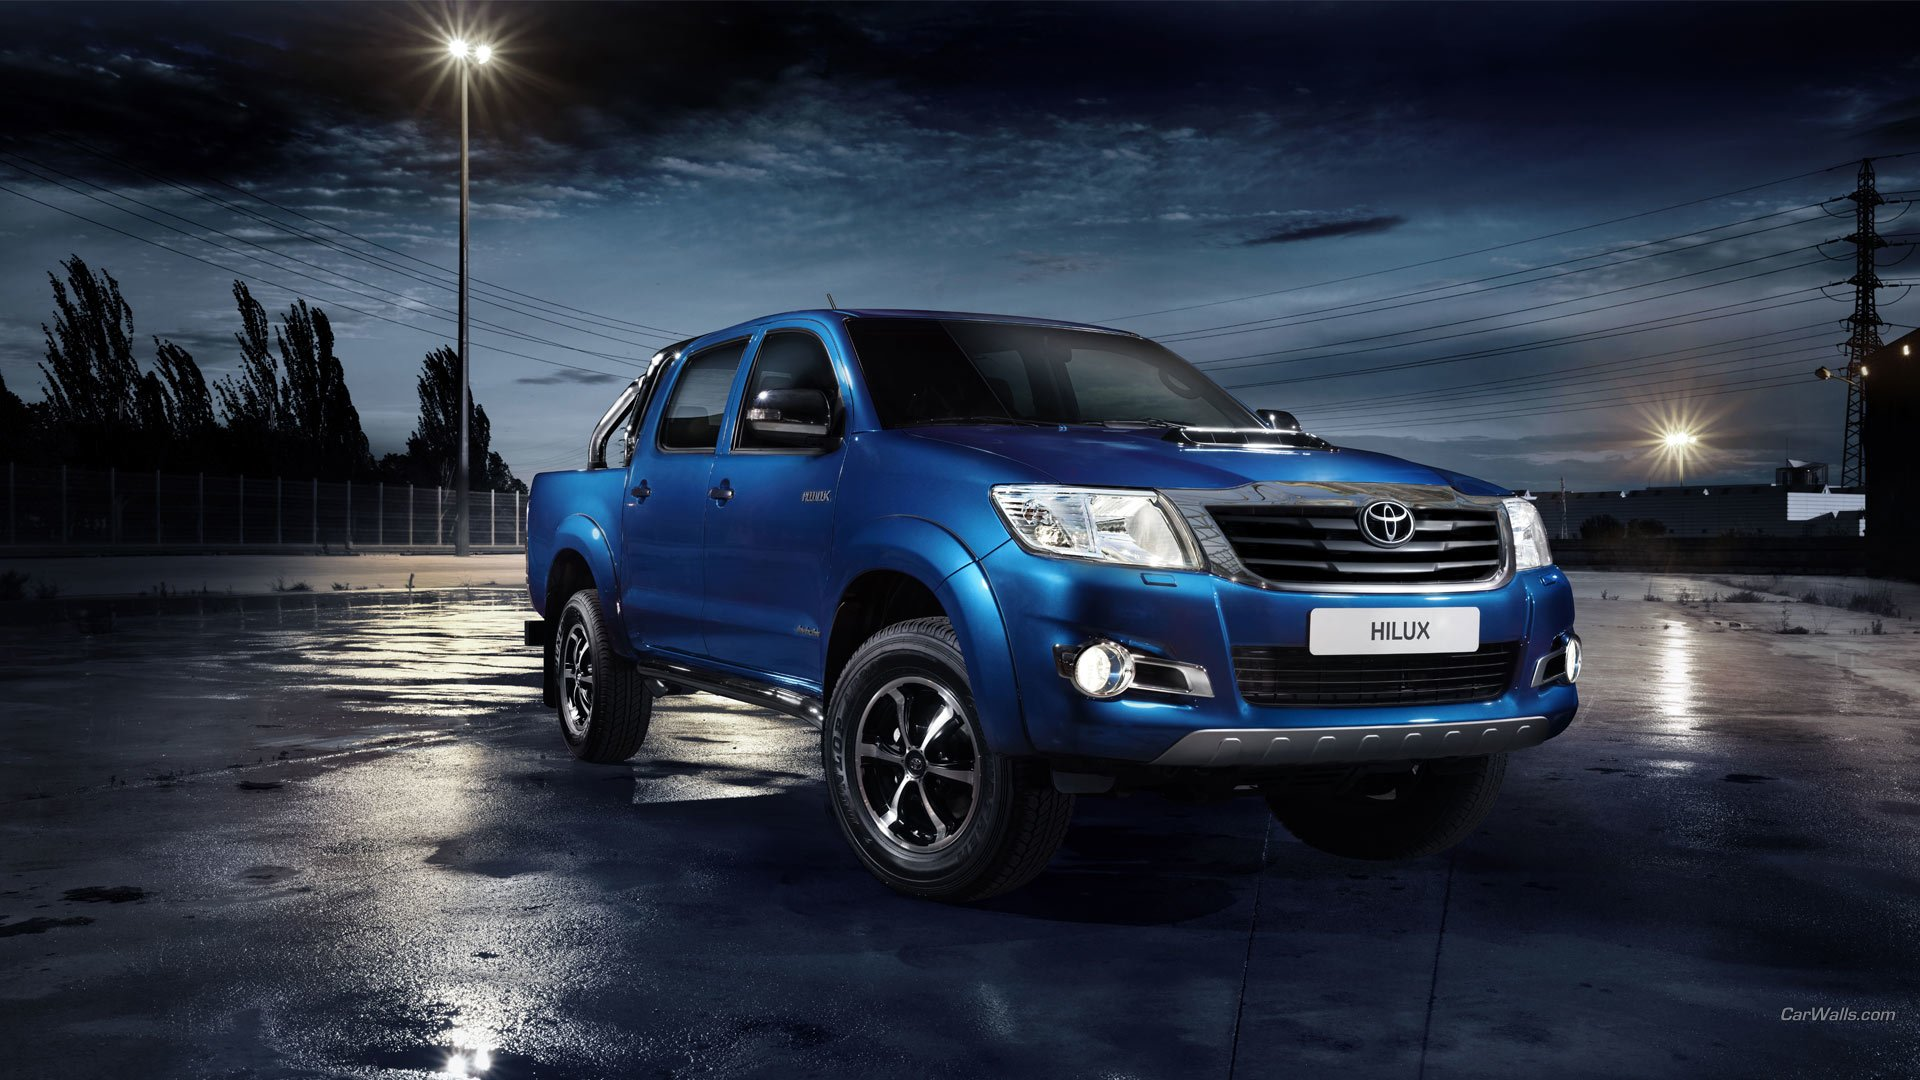 Toyota Hilux Hd Wallpaper Background Image 1920x1080 Id 450553